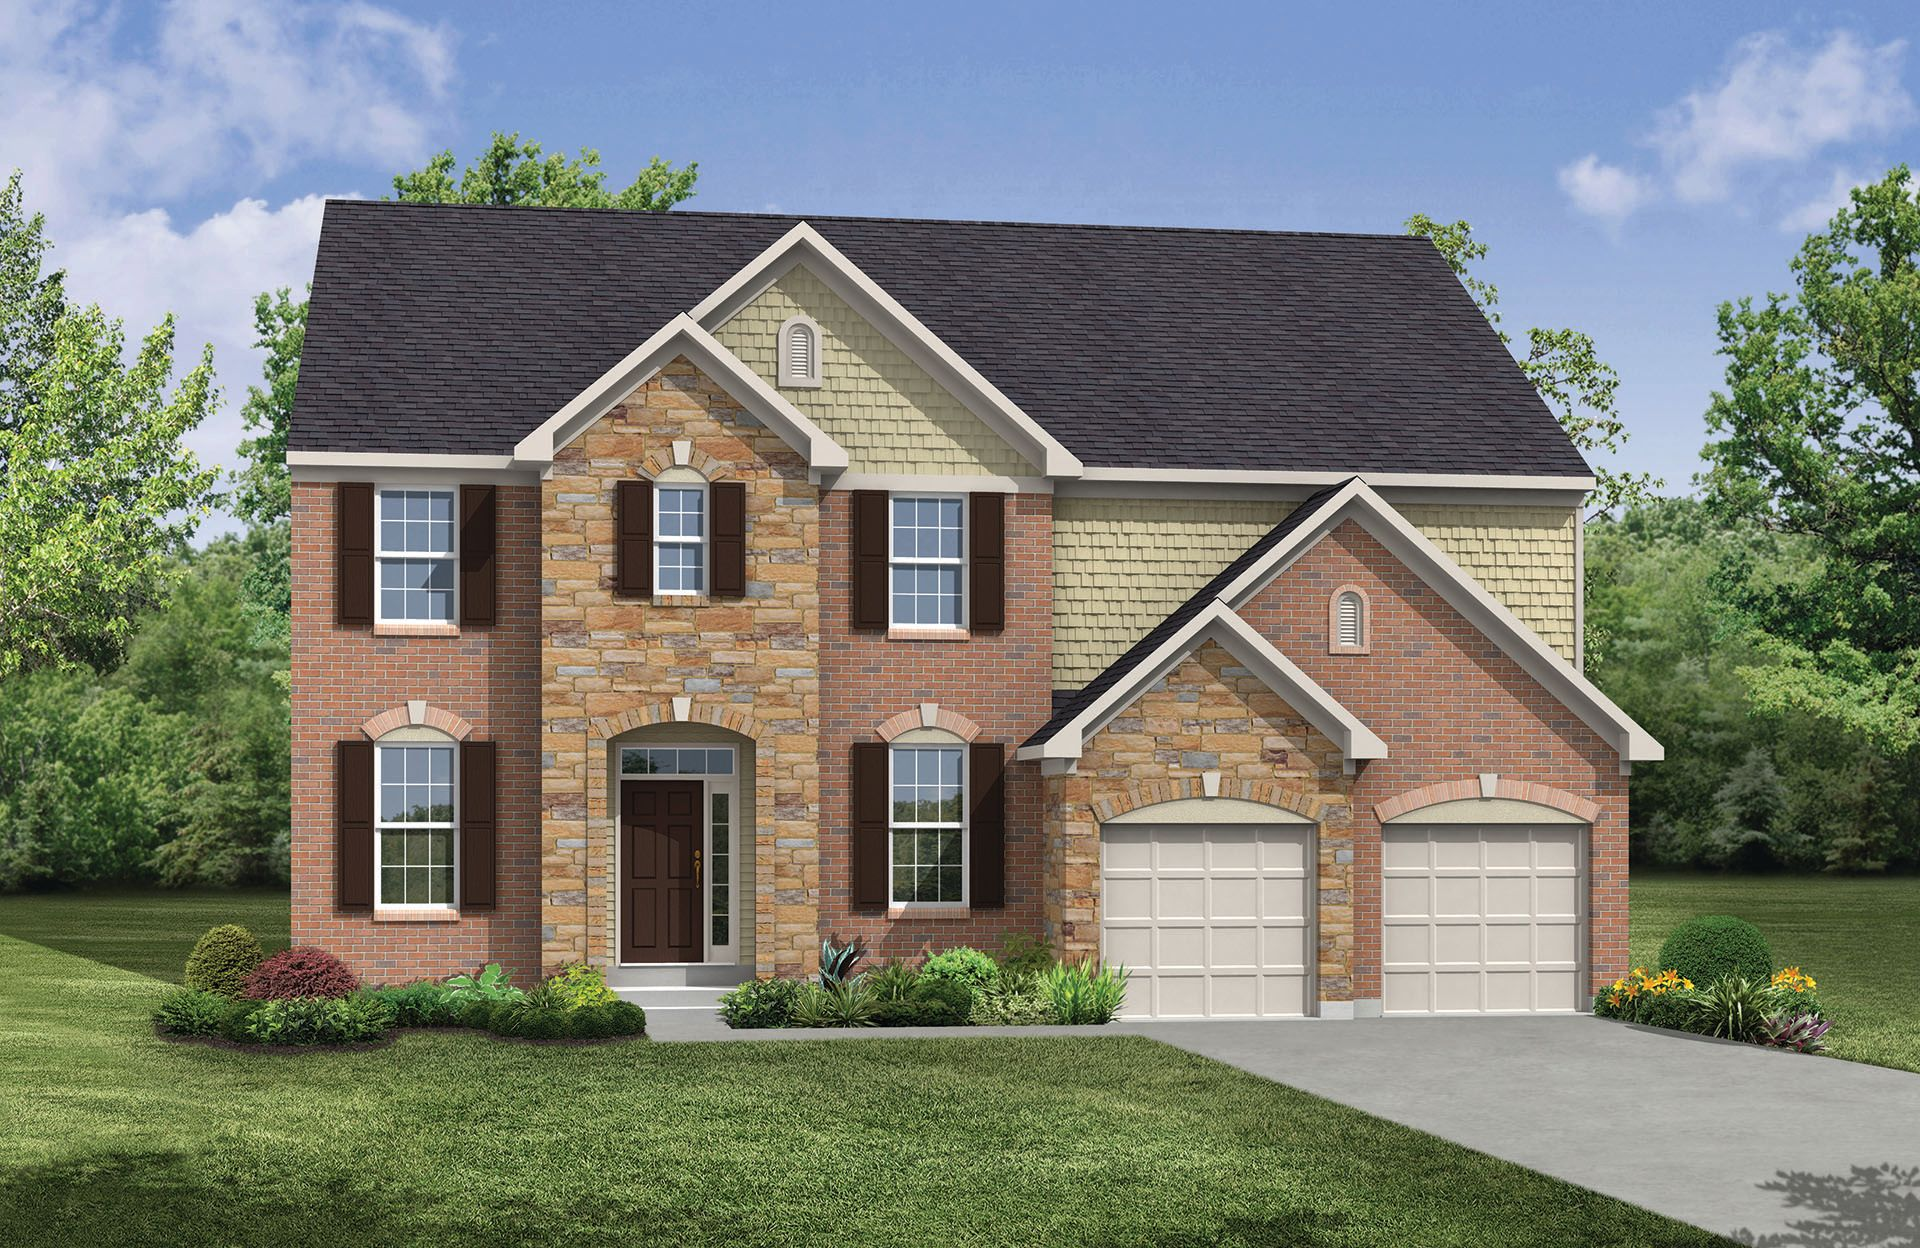 Single Family for Active at Glad Hill Estates - Buchanan 3600 Donna Court Monrovia, Maryland 21770 United States